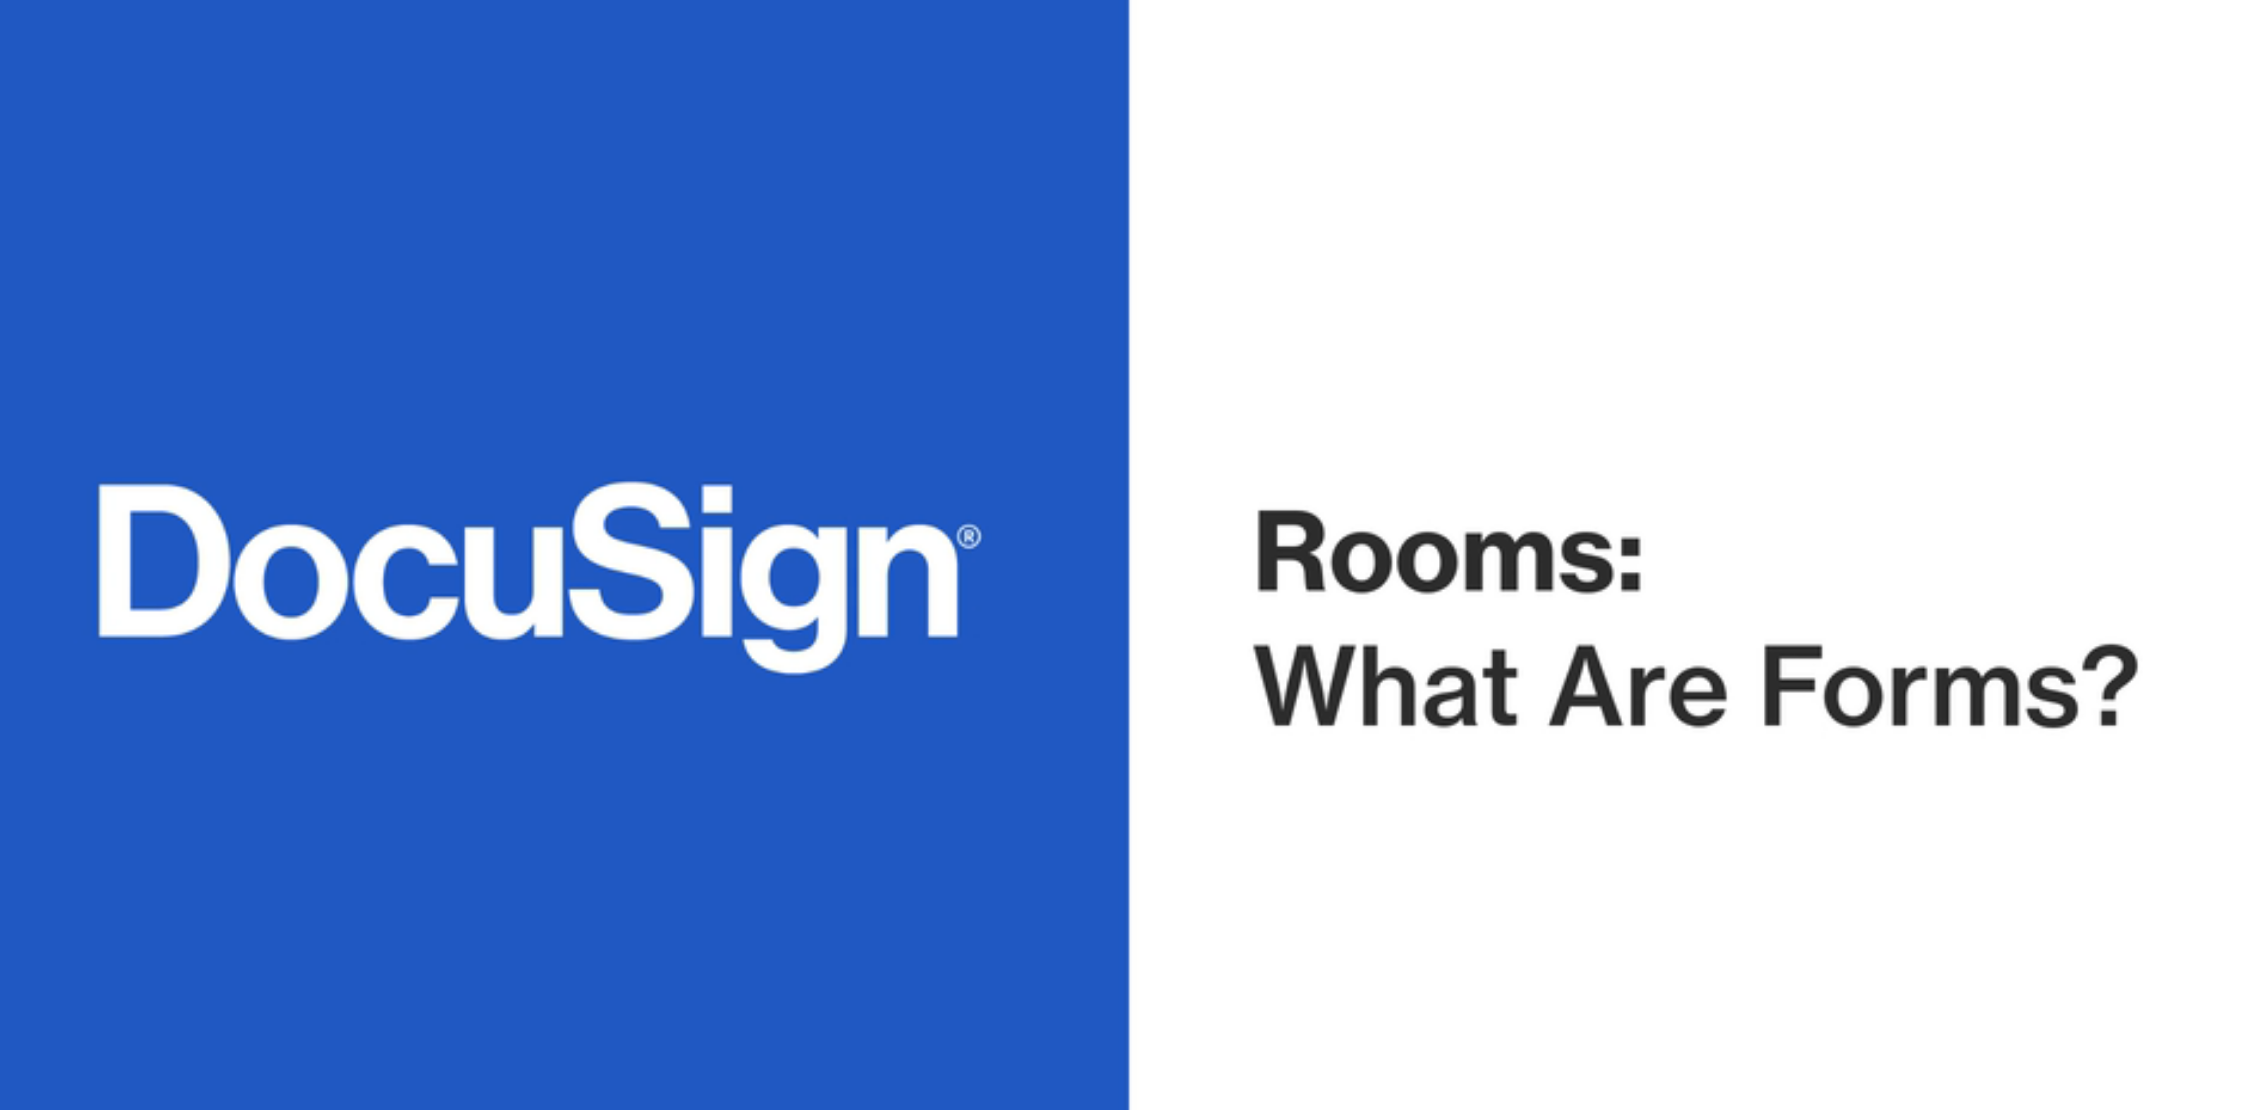 DocuSign Rooms: What are Forms?